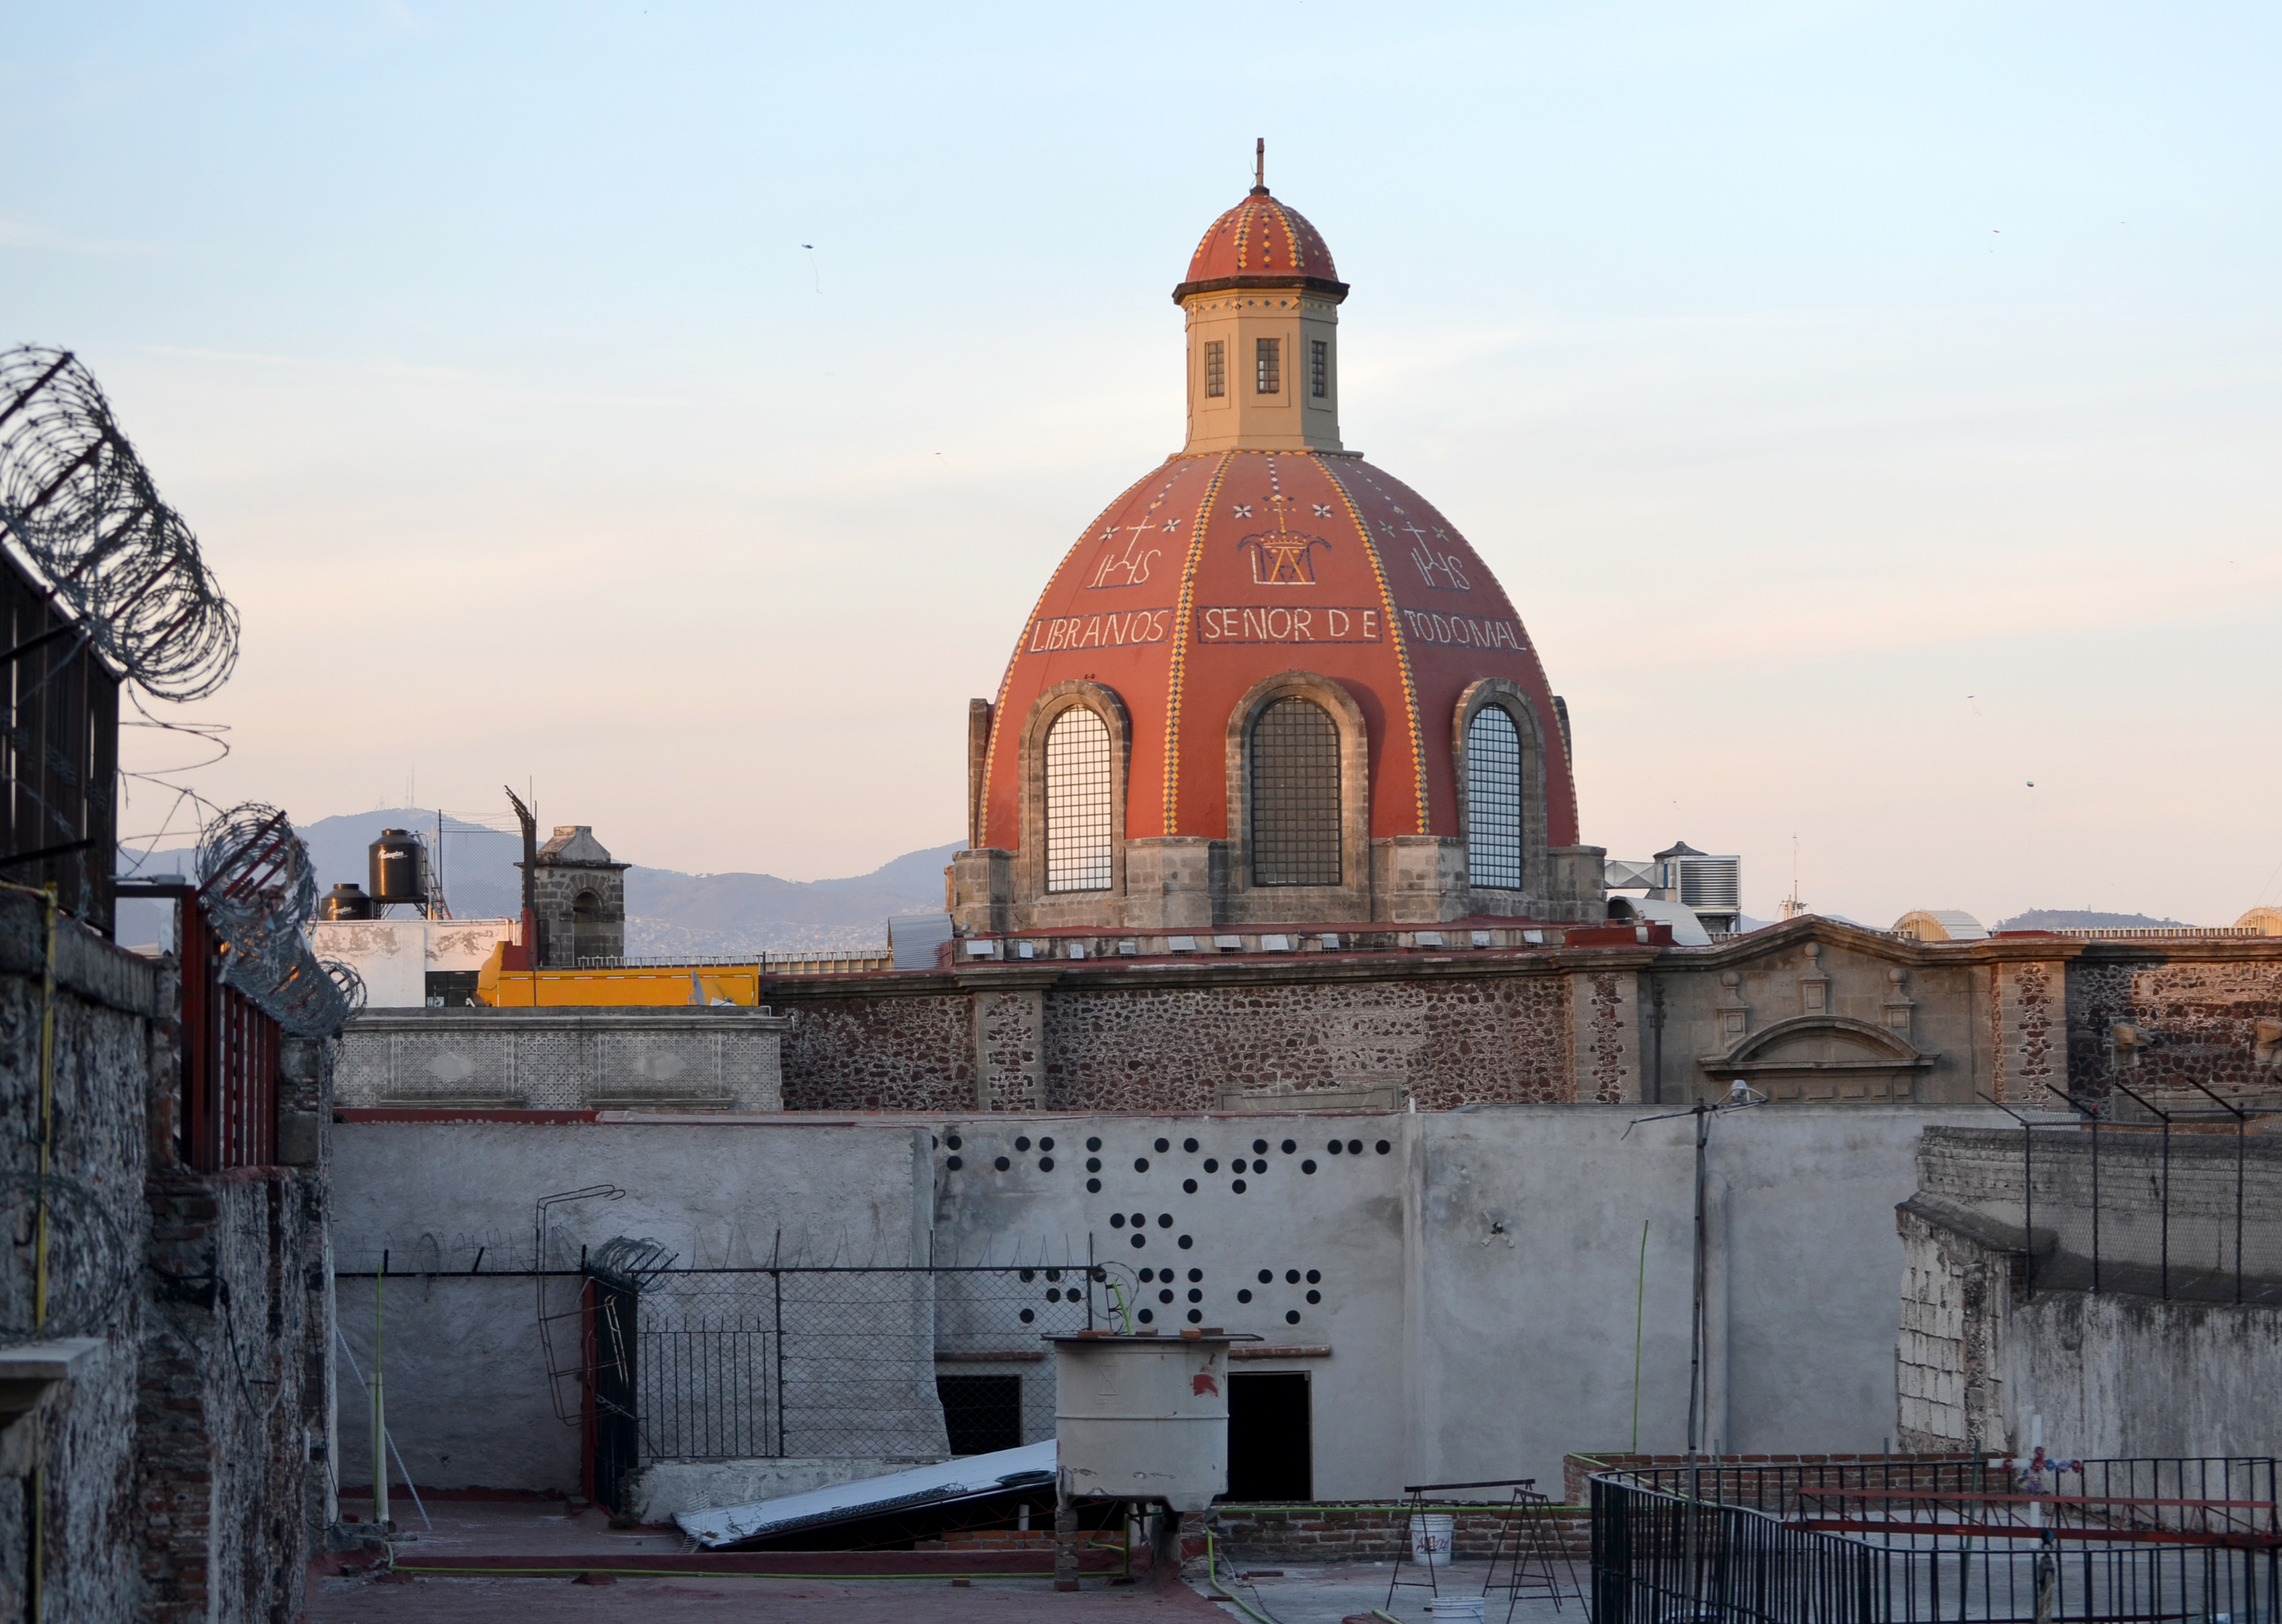 Biblioteca Ciega (Bilioteca de Hanlin), Vinyl on the surrounding buildings of the Historic Center of Mexico City, 2012